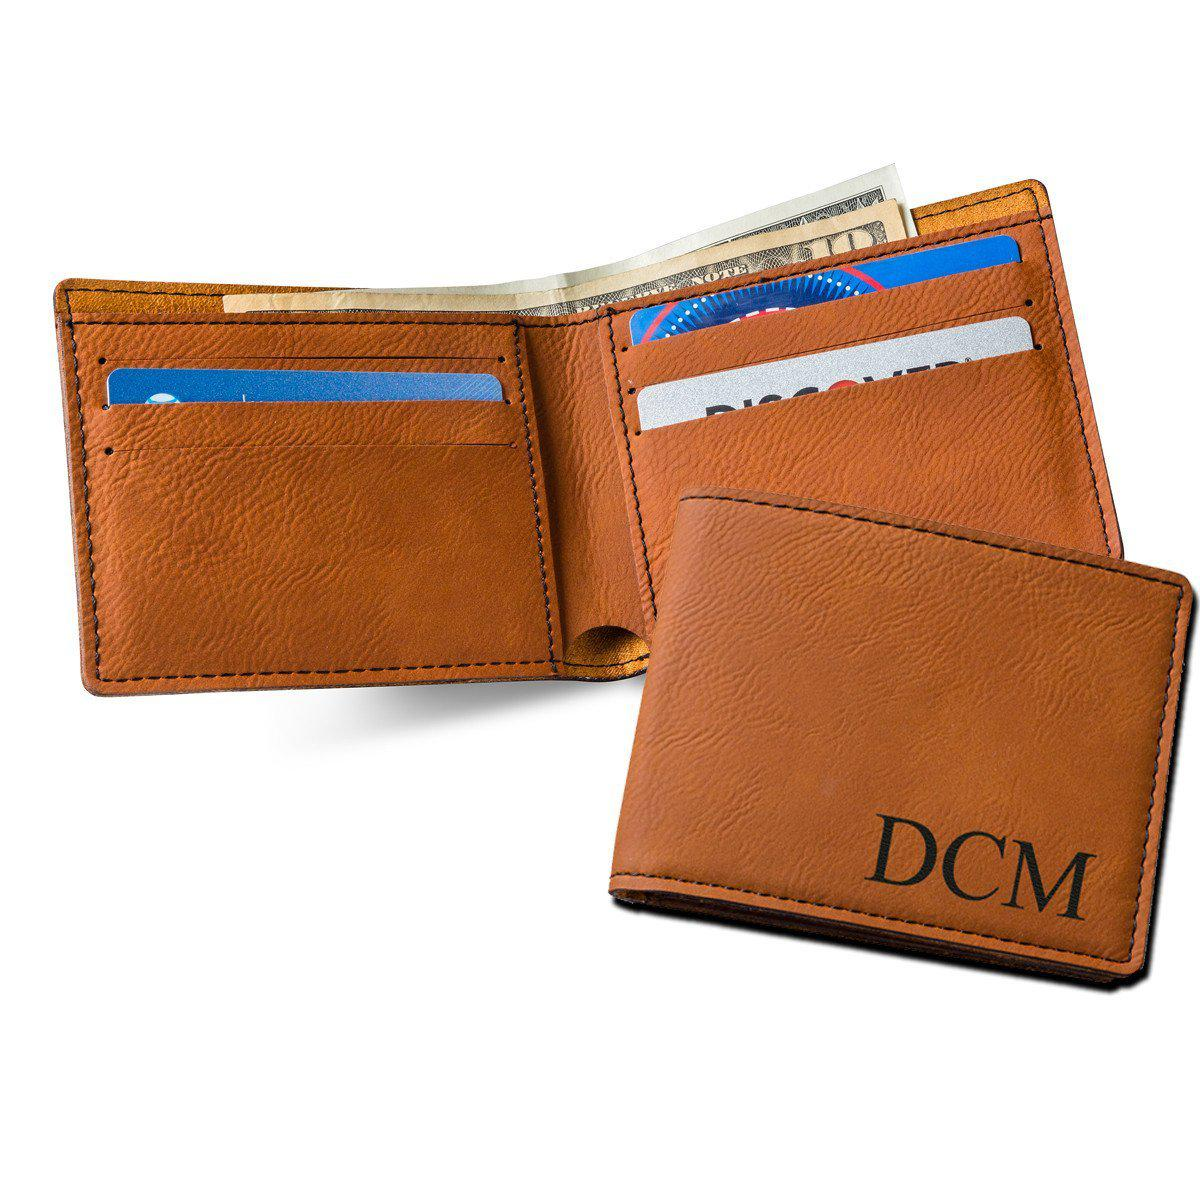 Personalized-Wallets-Leatherette-Monogrammed-Executive-Gifts